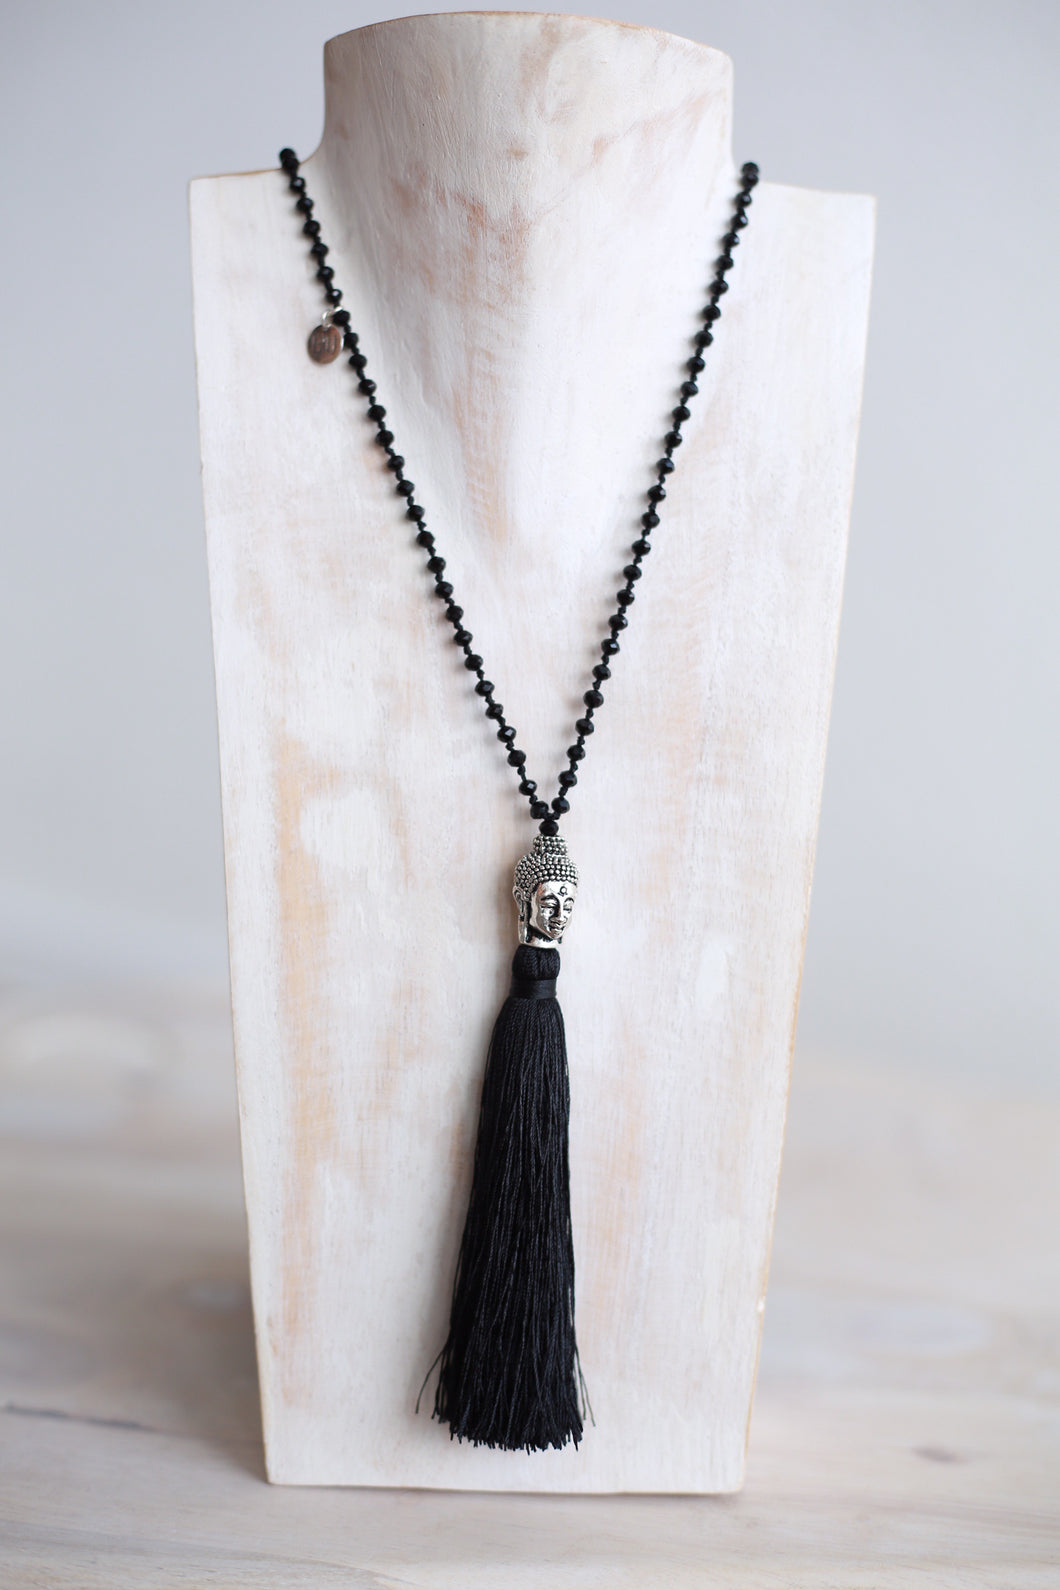 INIKA necklace with silver buddha